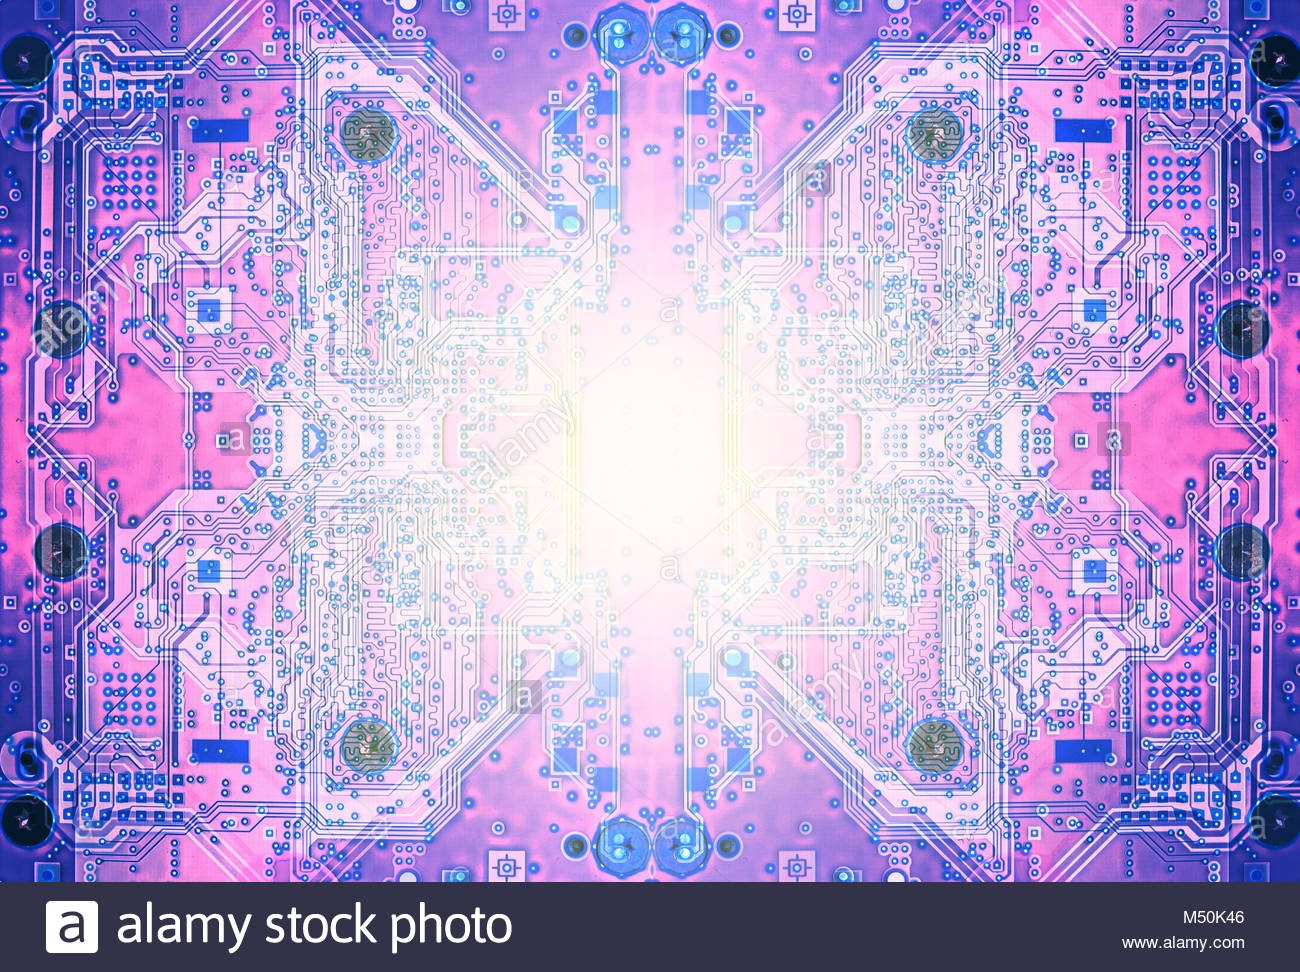 Abstract Vector Circuit Background Stock Photos Board Ai Free Graphics Download Purple Color Image